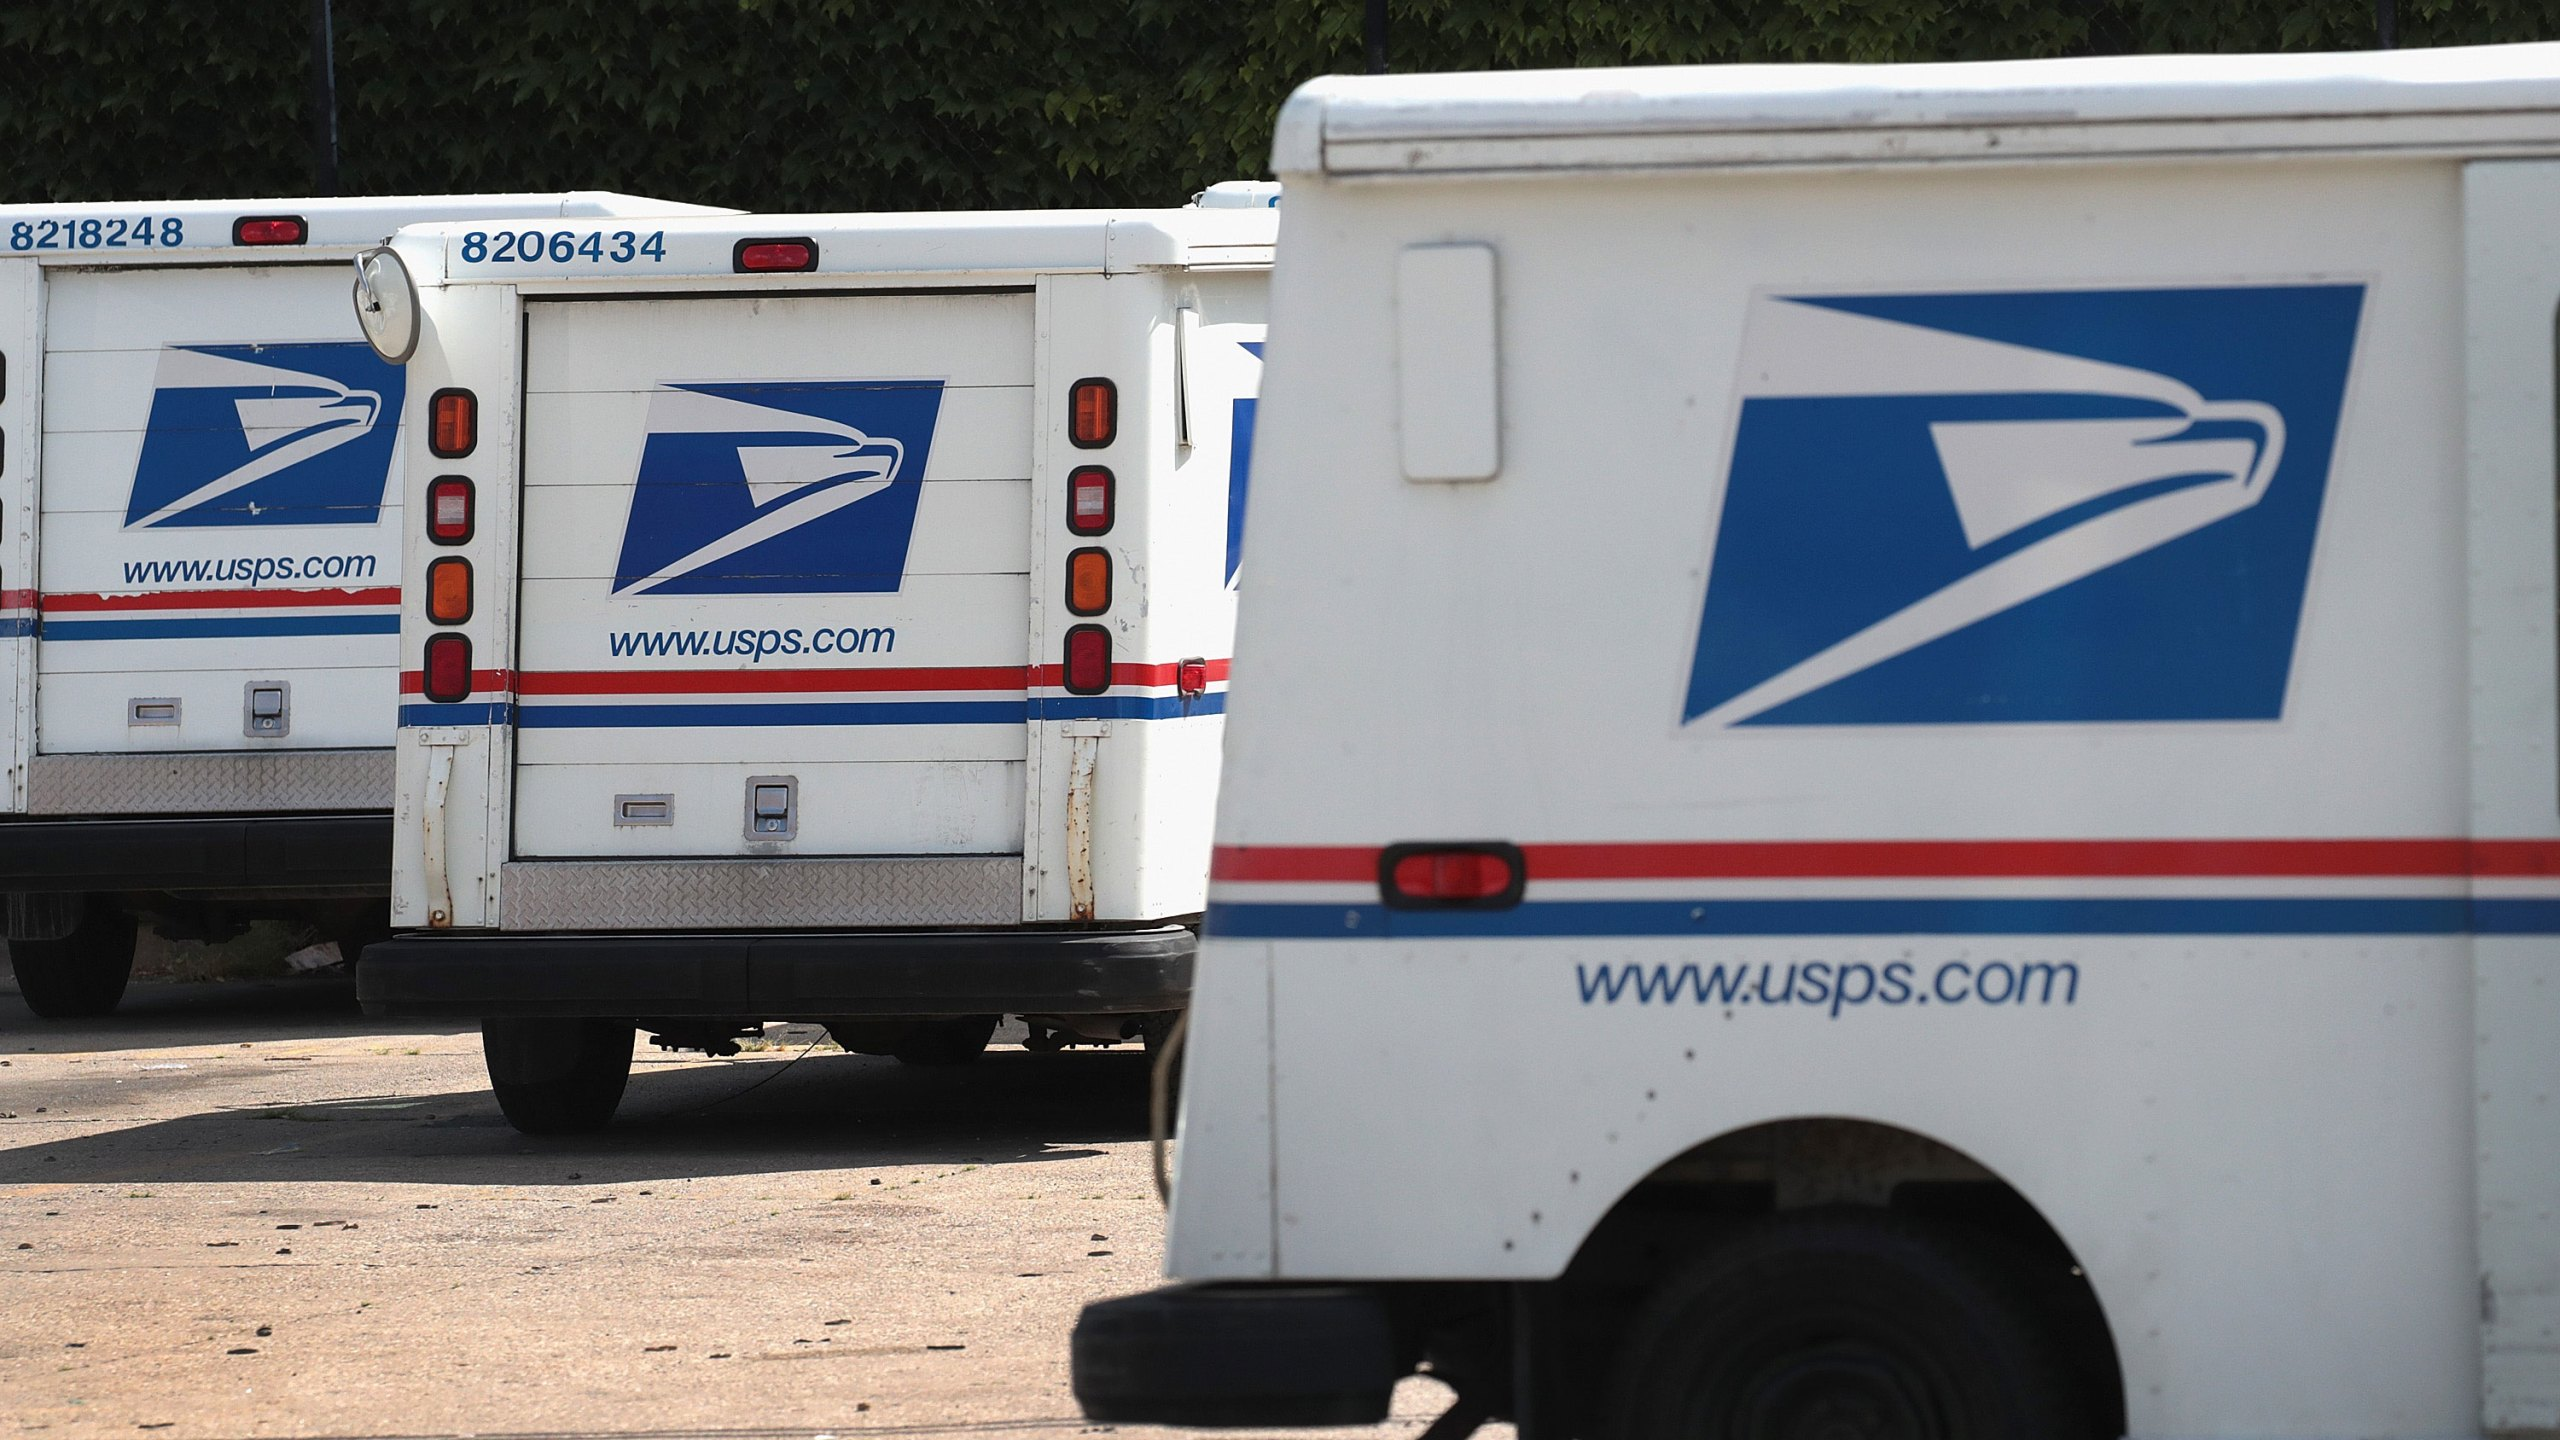 CHICAGO, ILLINOIS - AUGUST 15: United States Postal Service (USPS) trucks are parked at a postal facility on August 15, 2019 in Chicago, Illinois. (Photo by Scott Olson/Getty Images)